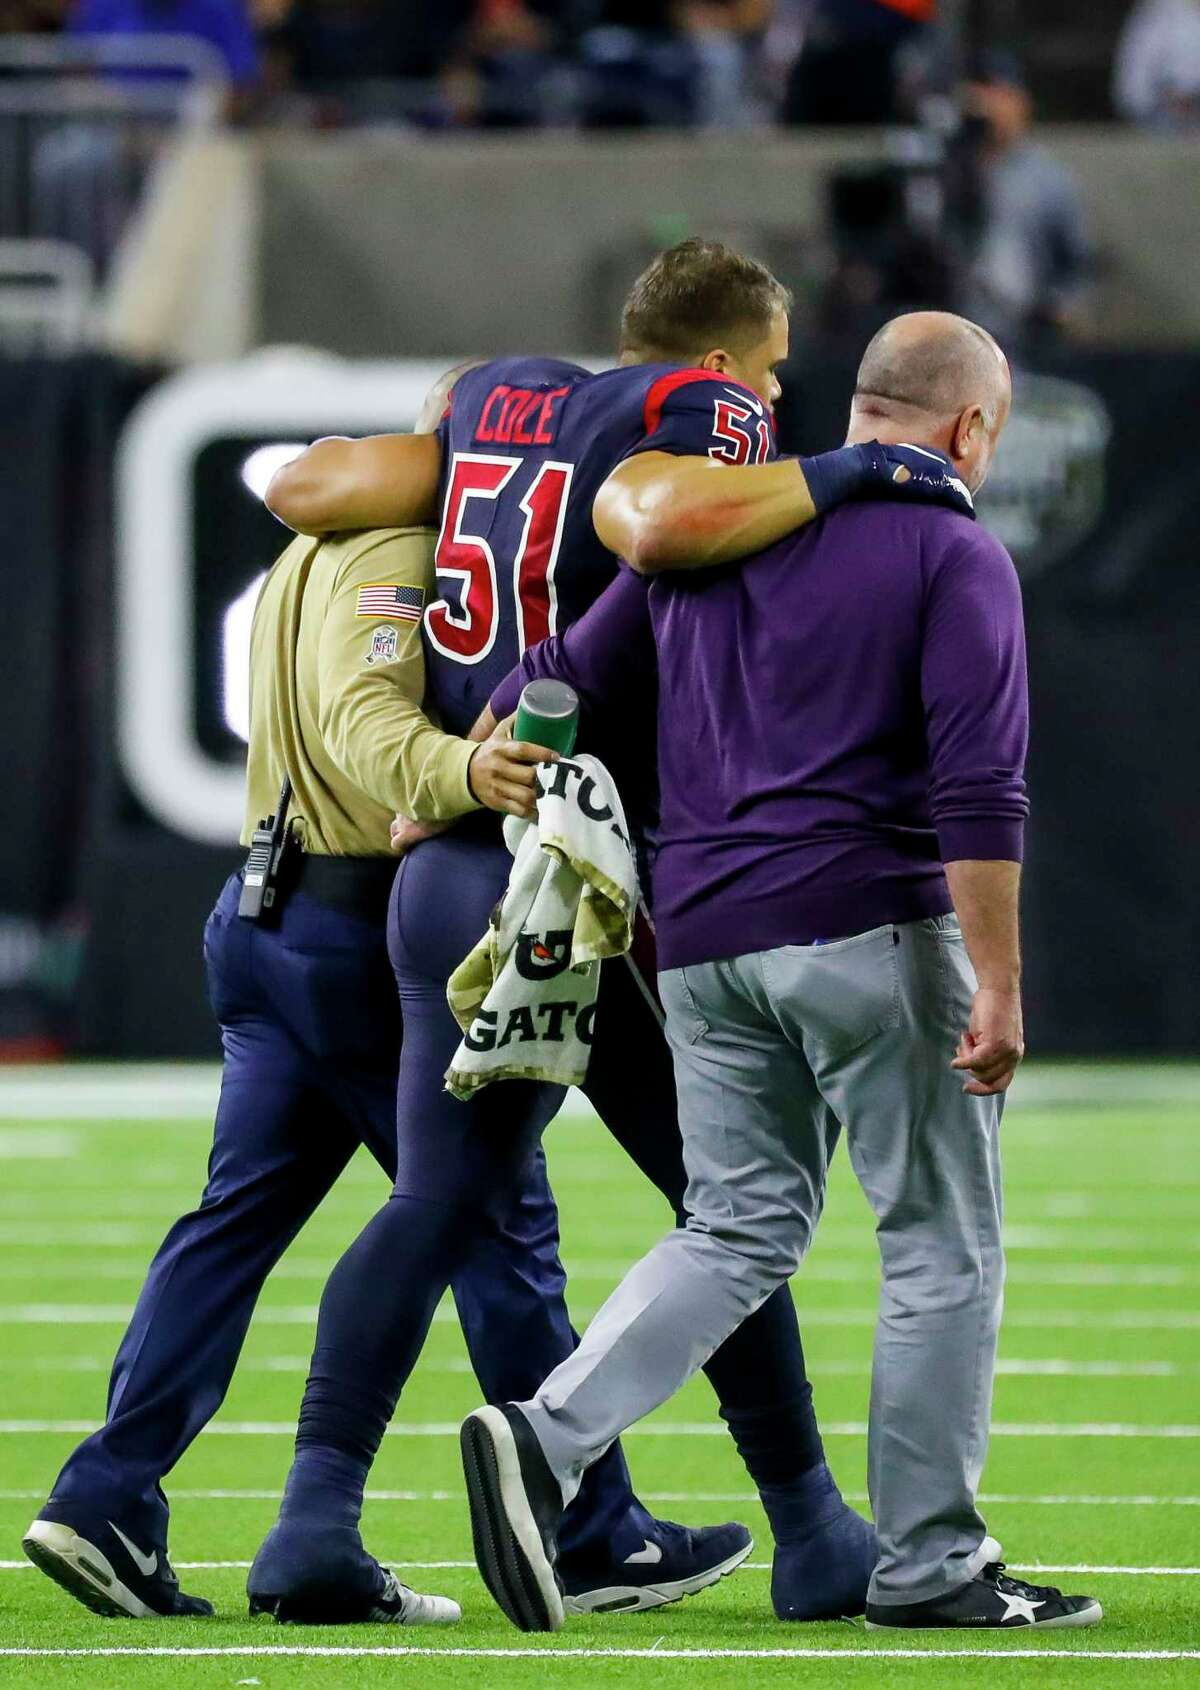 Houston Texans linebacker Dylan Cole (51) is helped off the field during the second quarter of an NFL football game at NRG Stadium, Thursday, Nov. 21, 2019, in Houston.